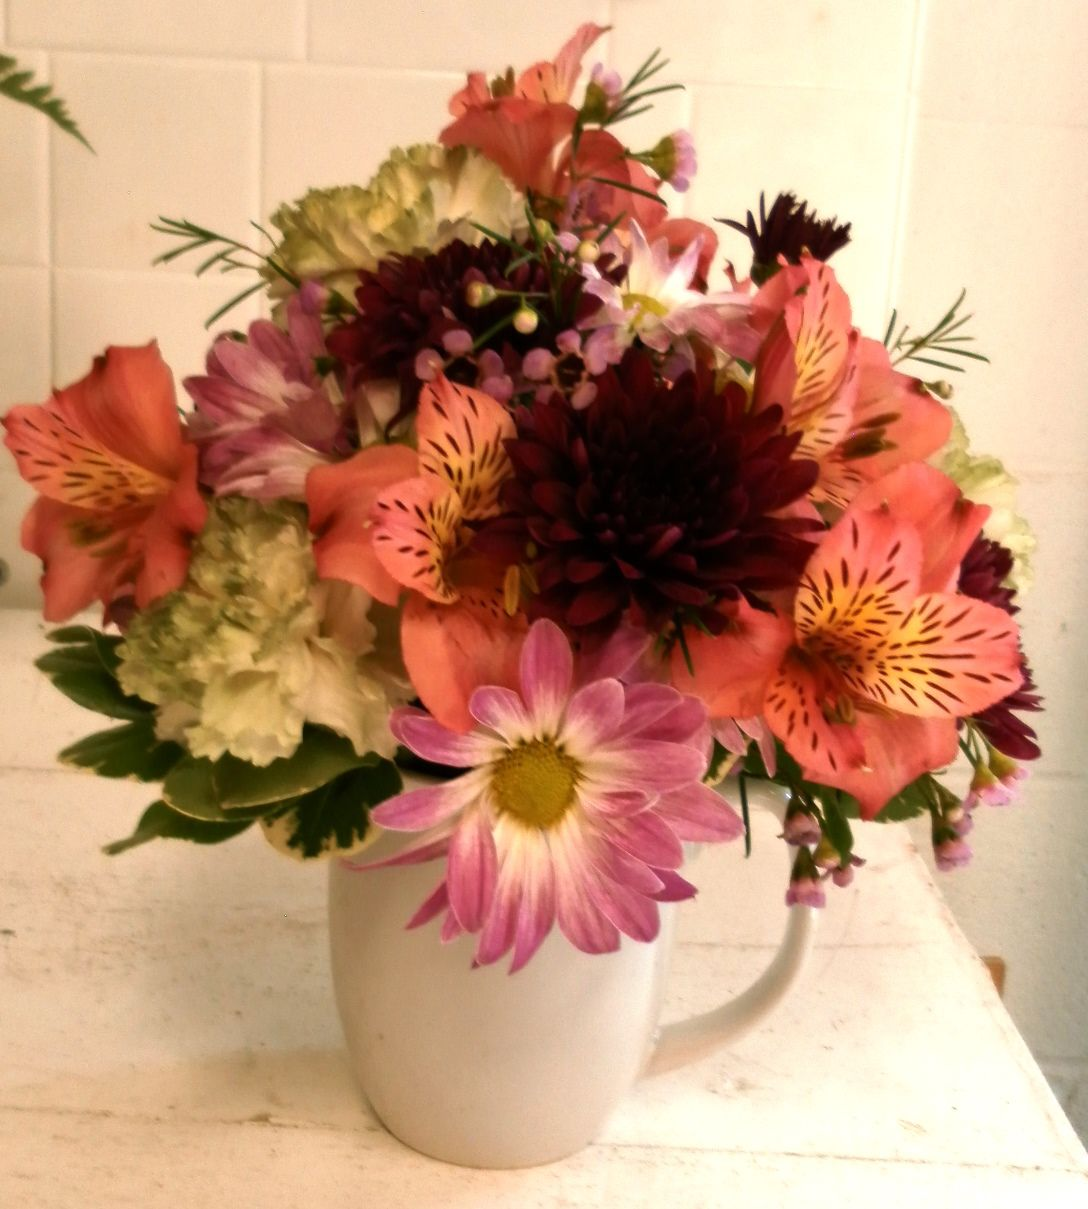 Good Morning from Simplicity Floral! Wake up to this stunning arrangement in a coffee/tea mug filled with all your favorite blooms!